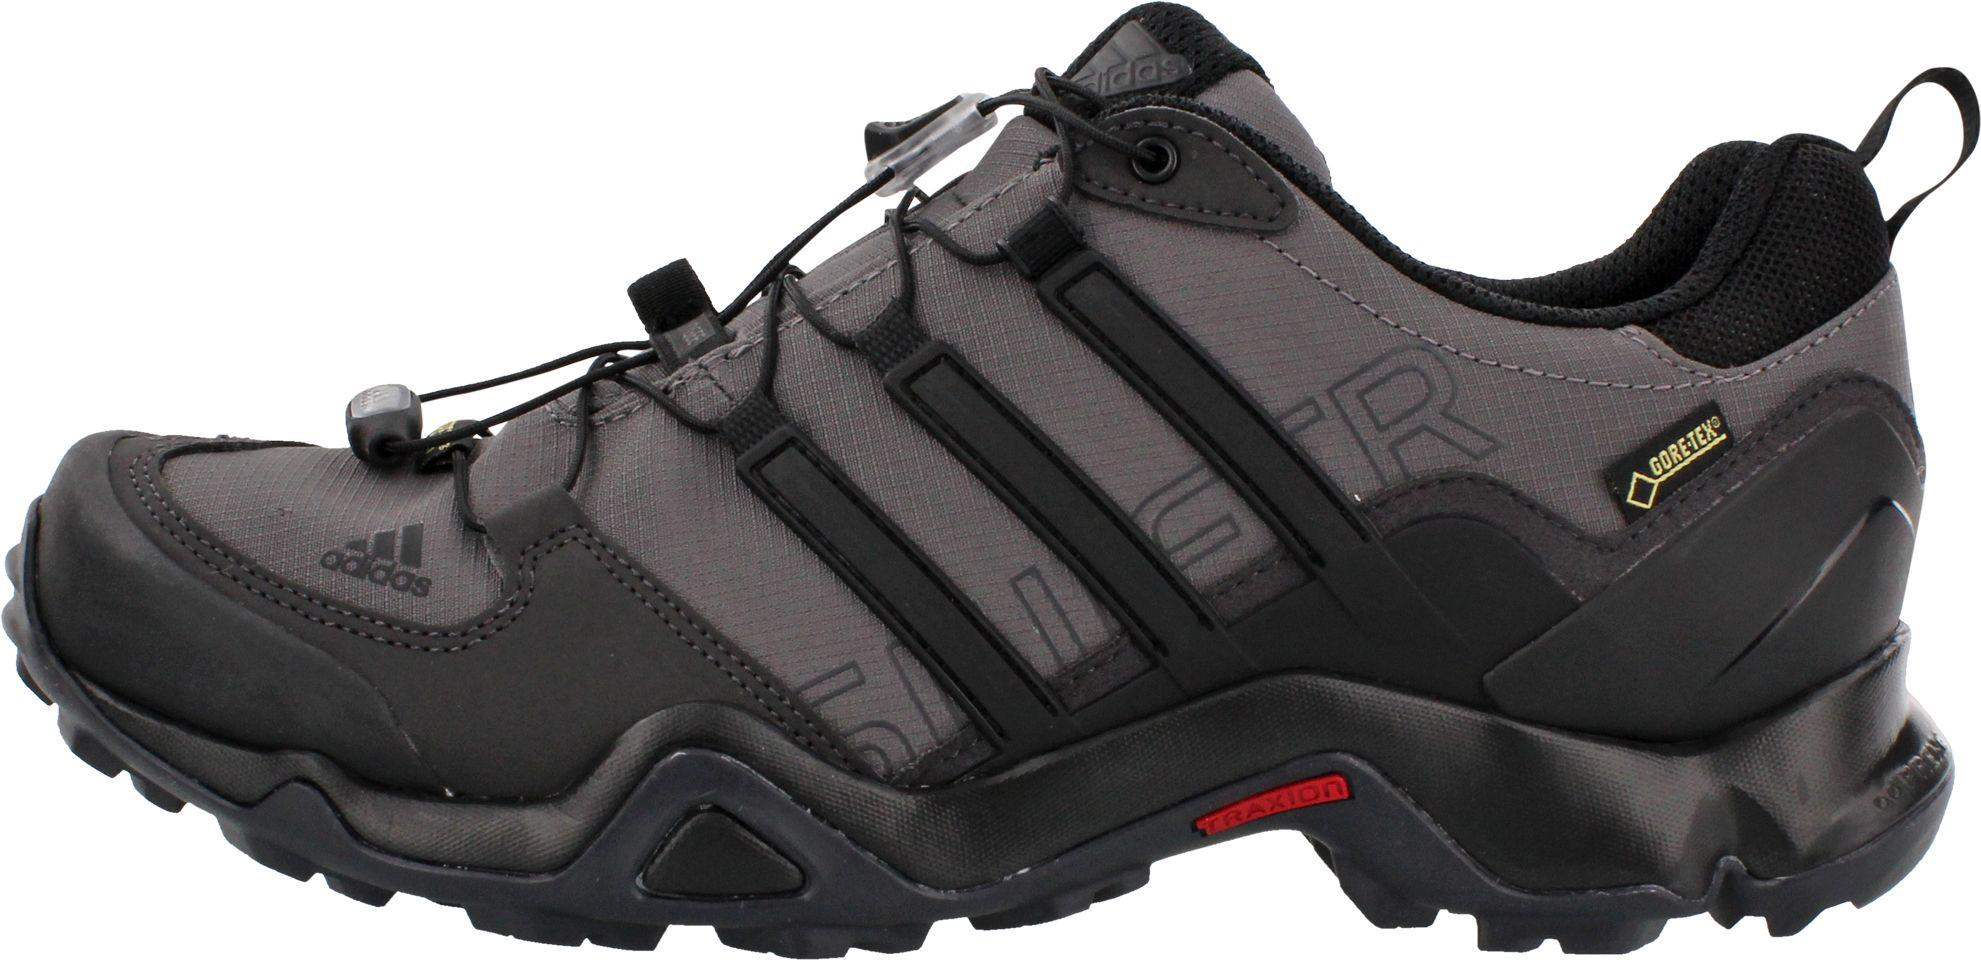 488155930 Lyst - Adidas Outdoor Terrex Swift R Gtx Hiking Shoes in Black for Men